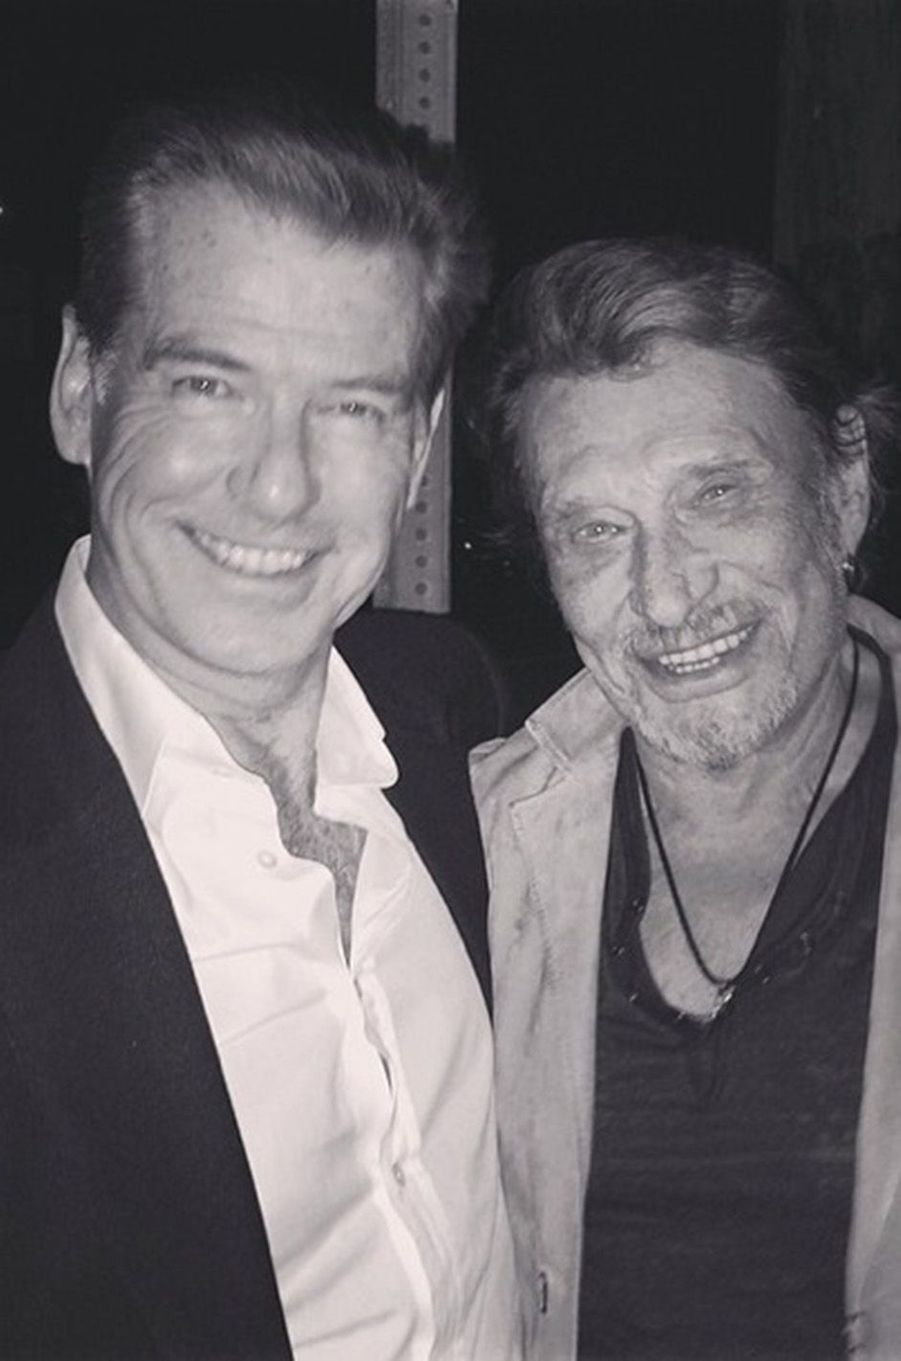 Johnny Hallyday et Pierce Brosnan